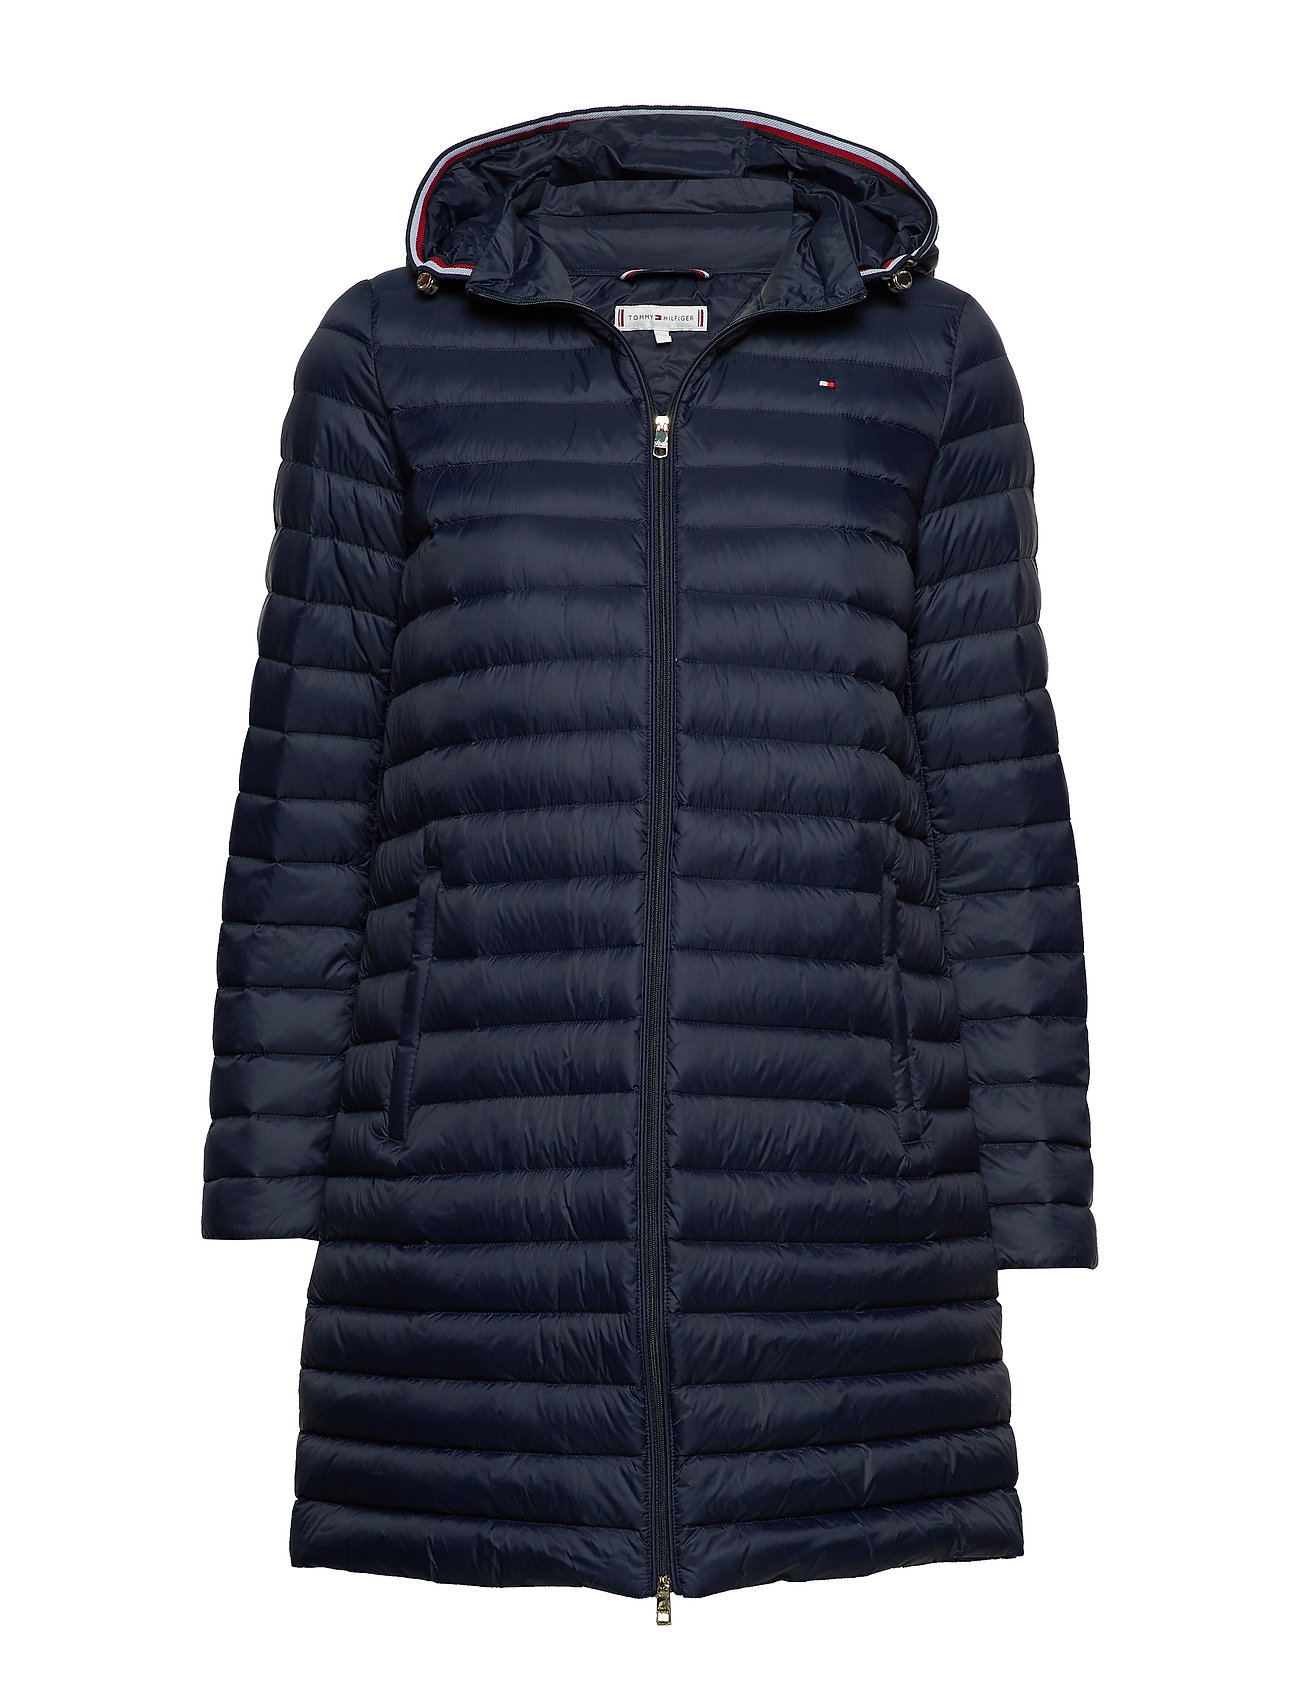 Tommy Hilfiger BELLA LW DOWN PACKAB - SKY CAPTAIN